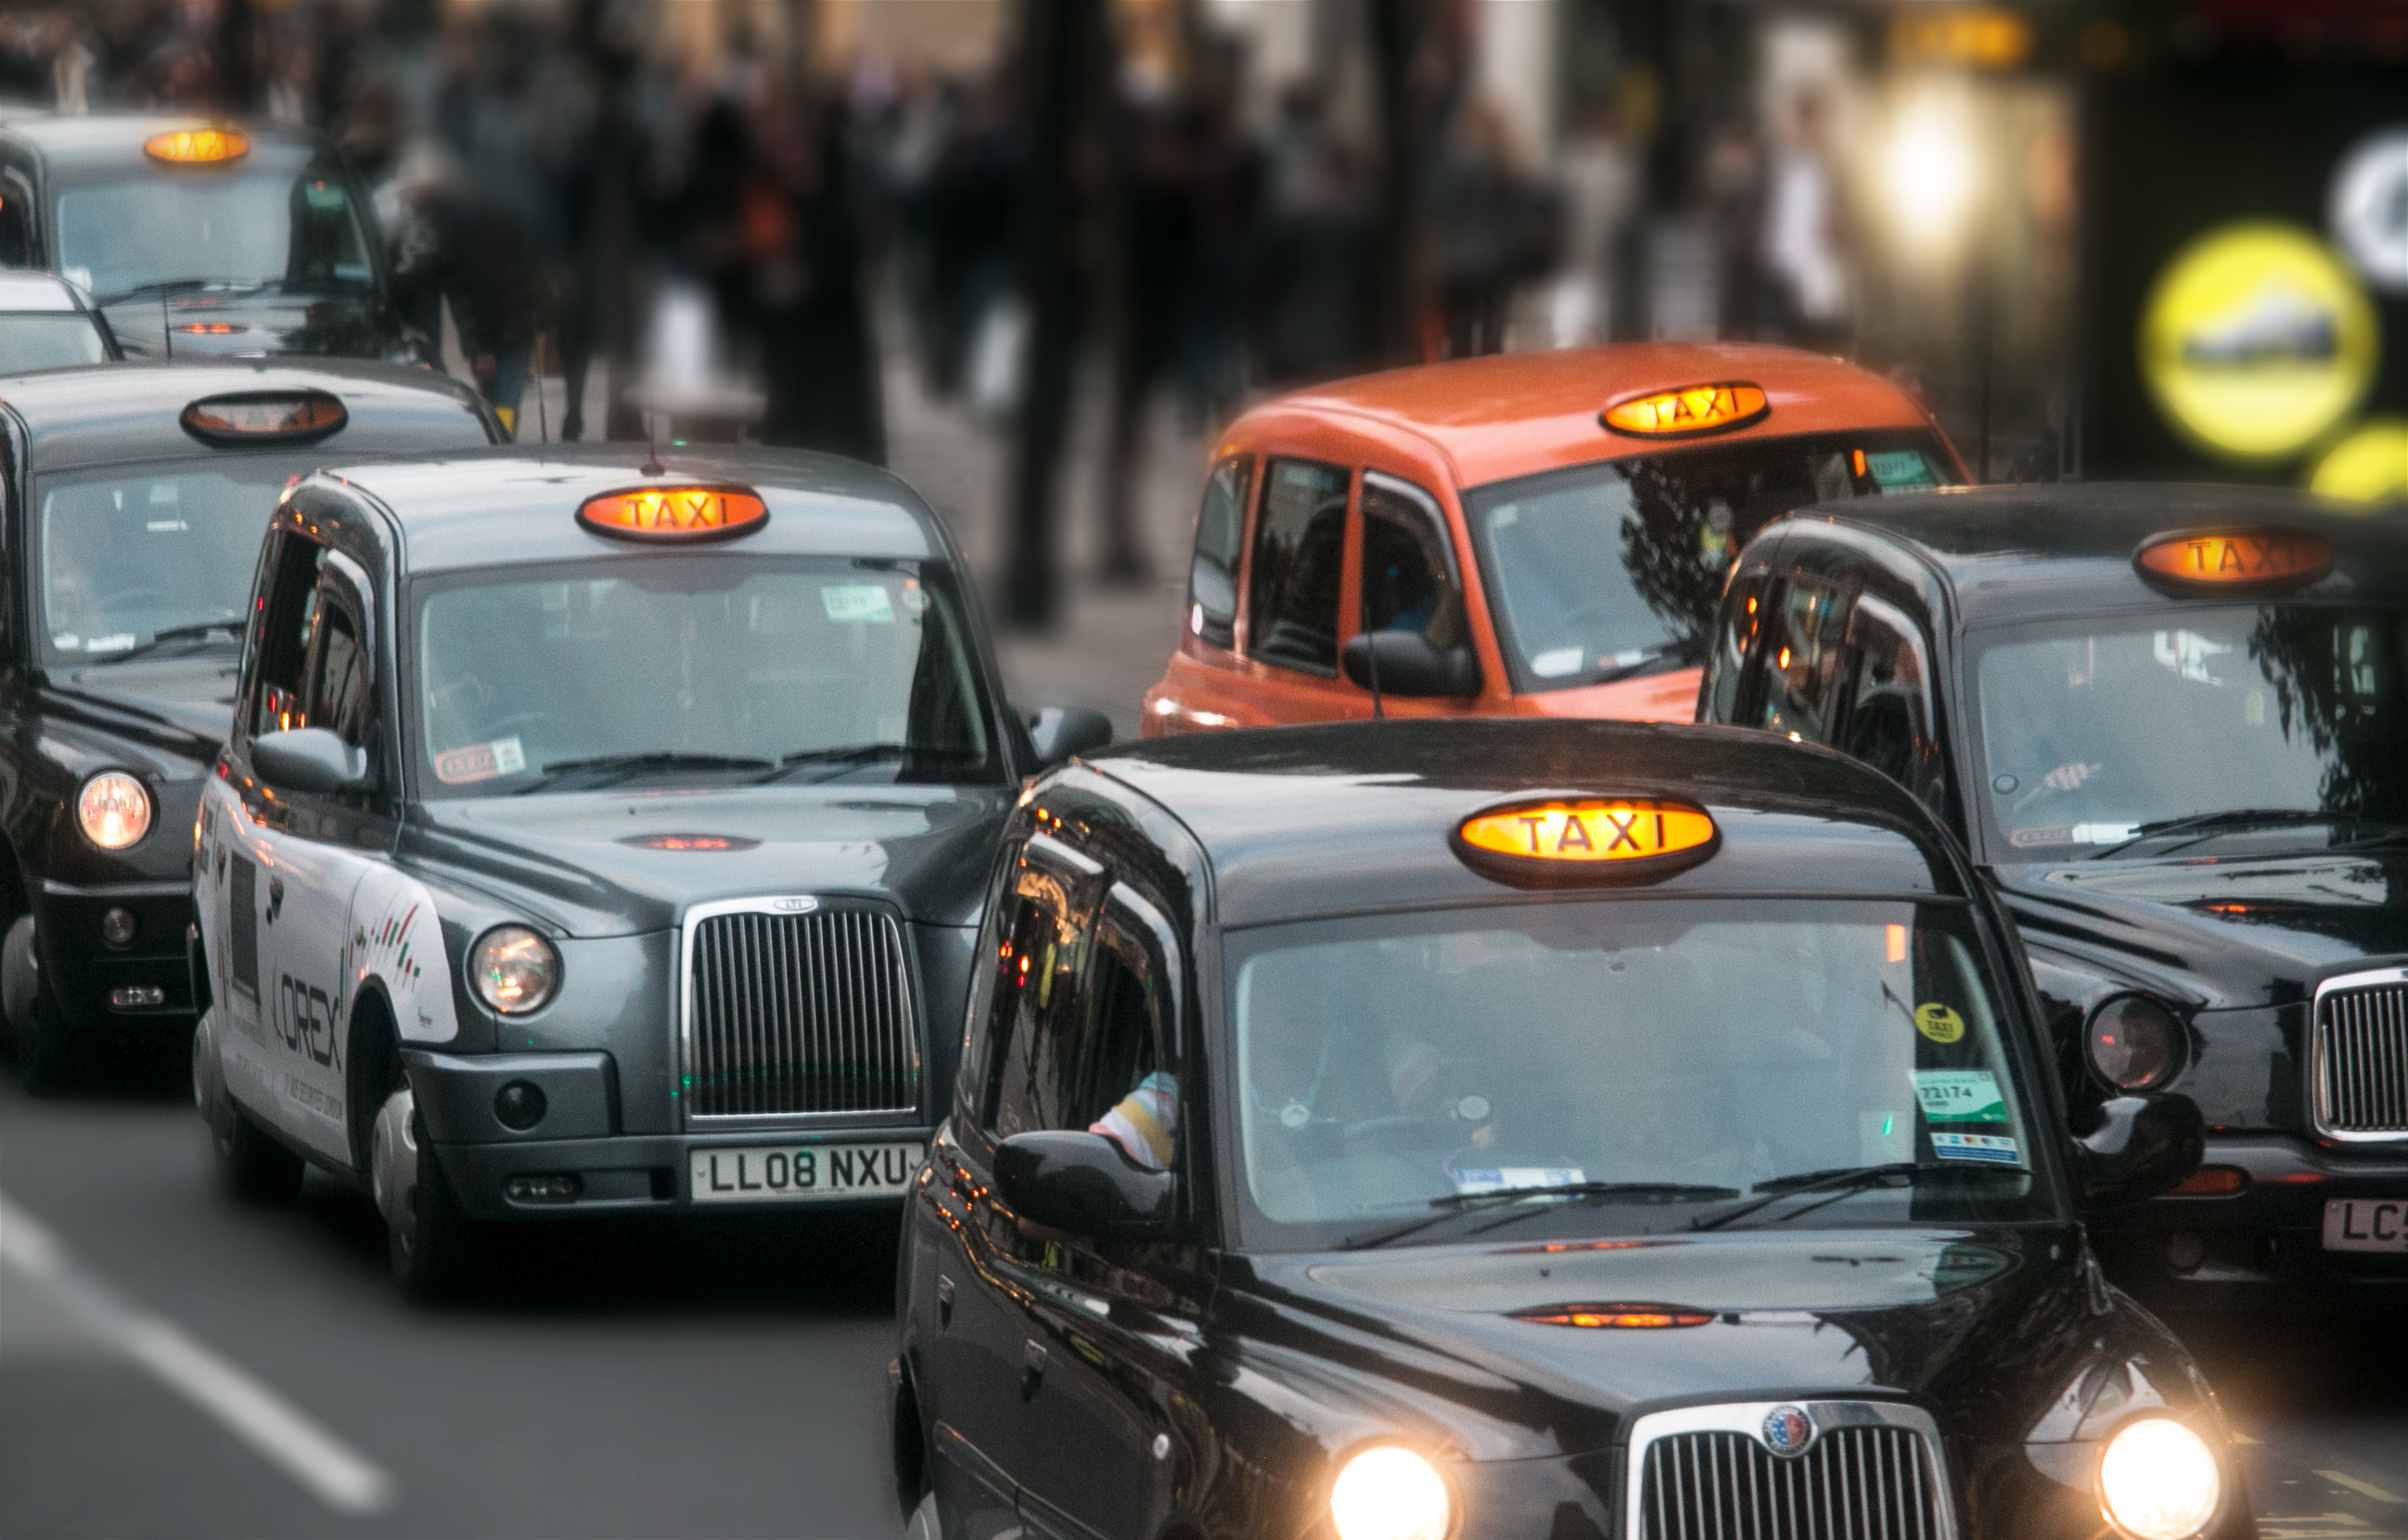 British Cabs, London